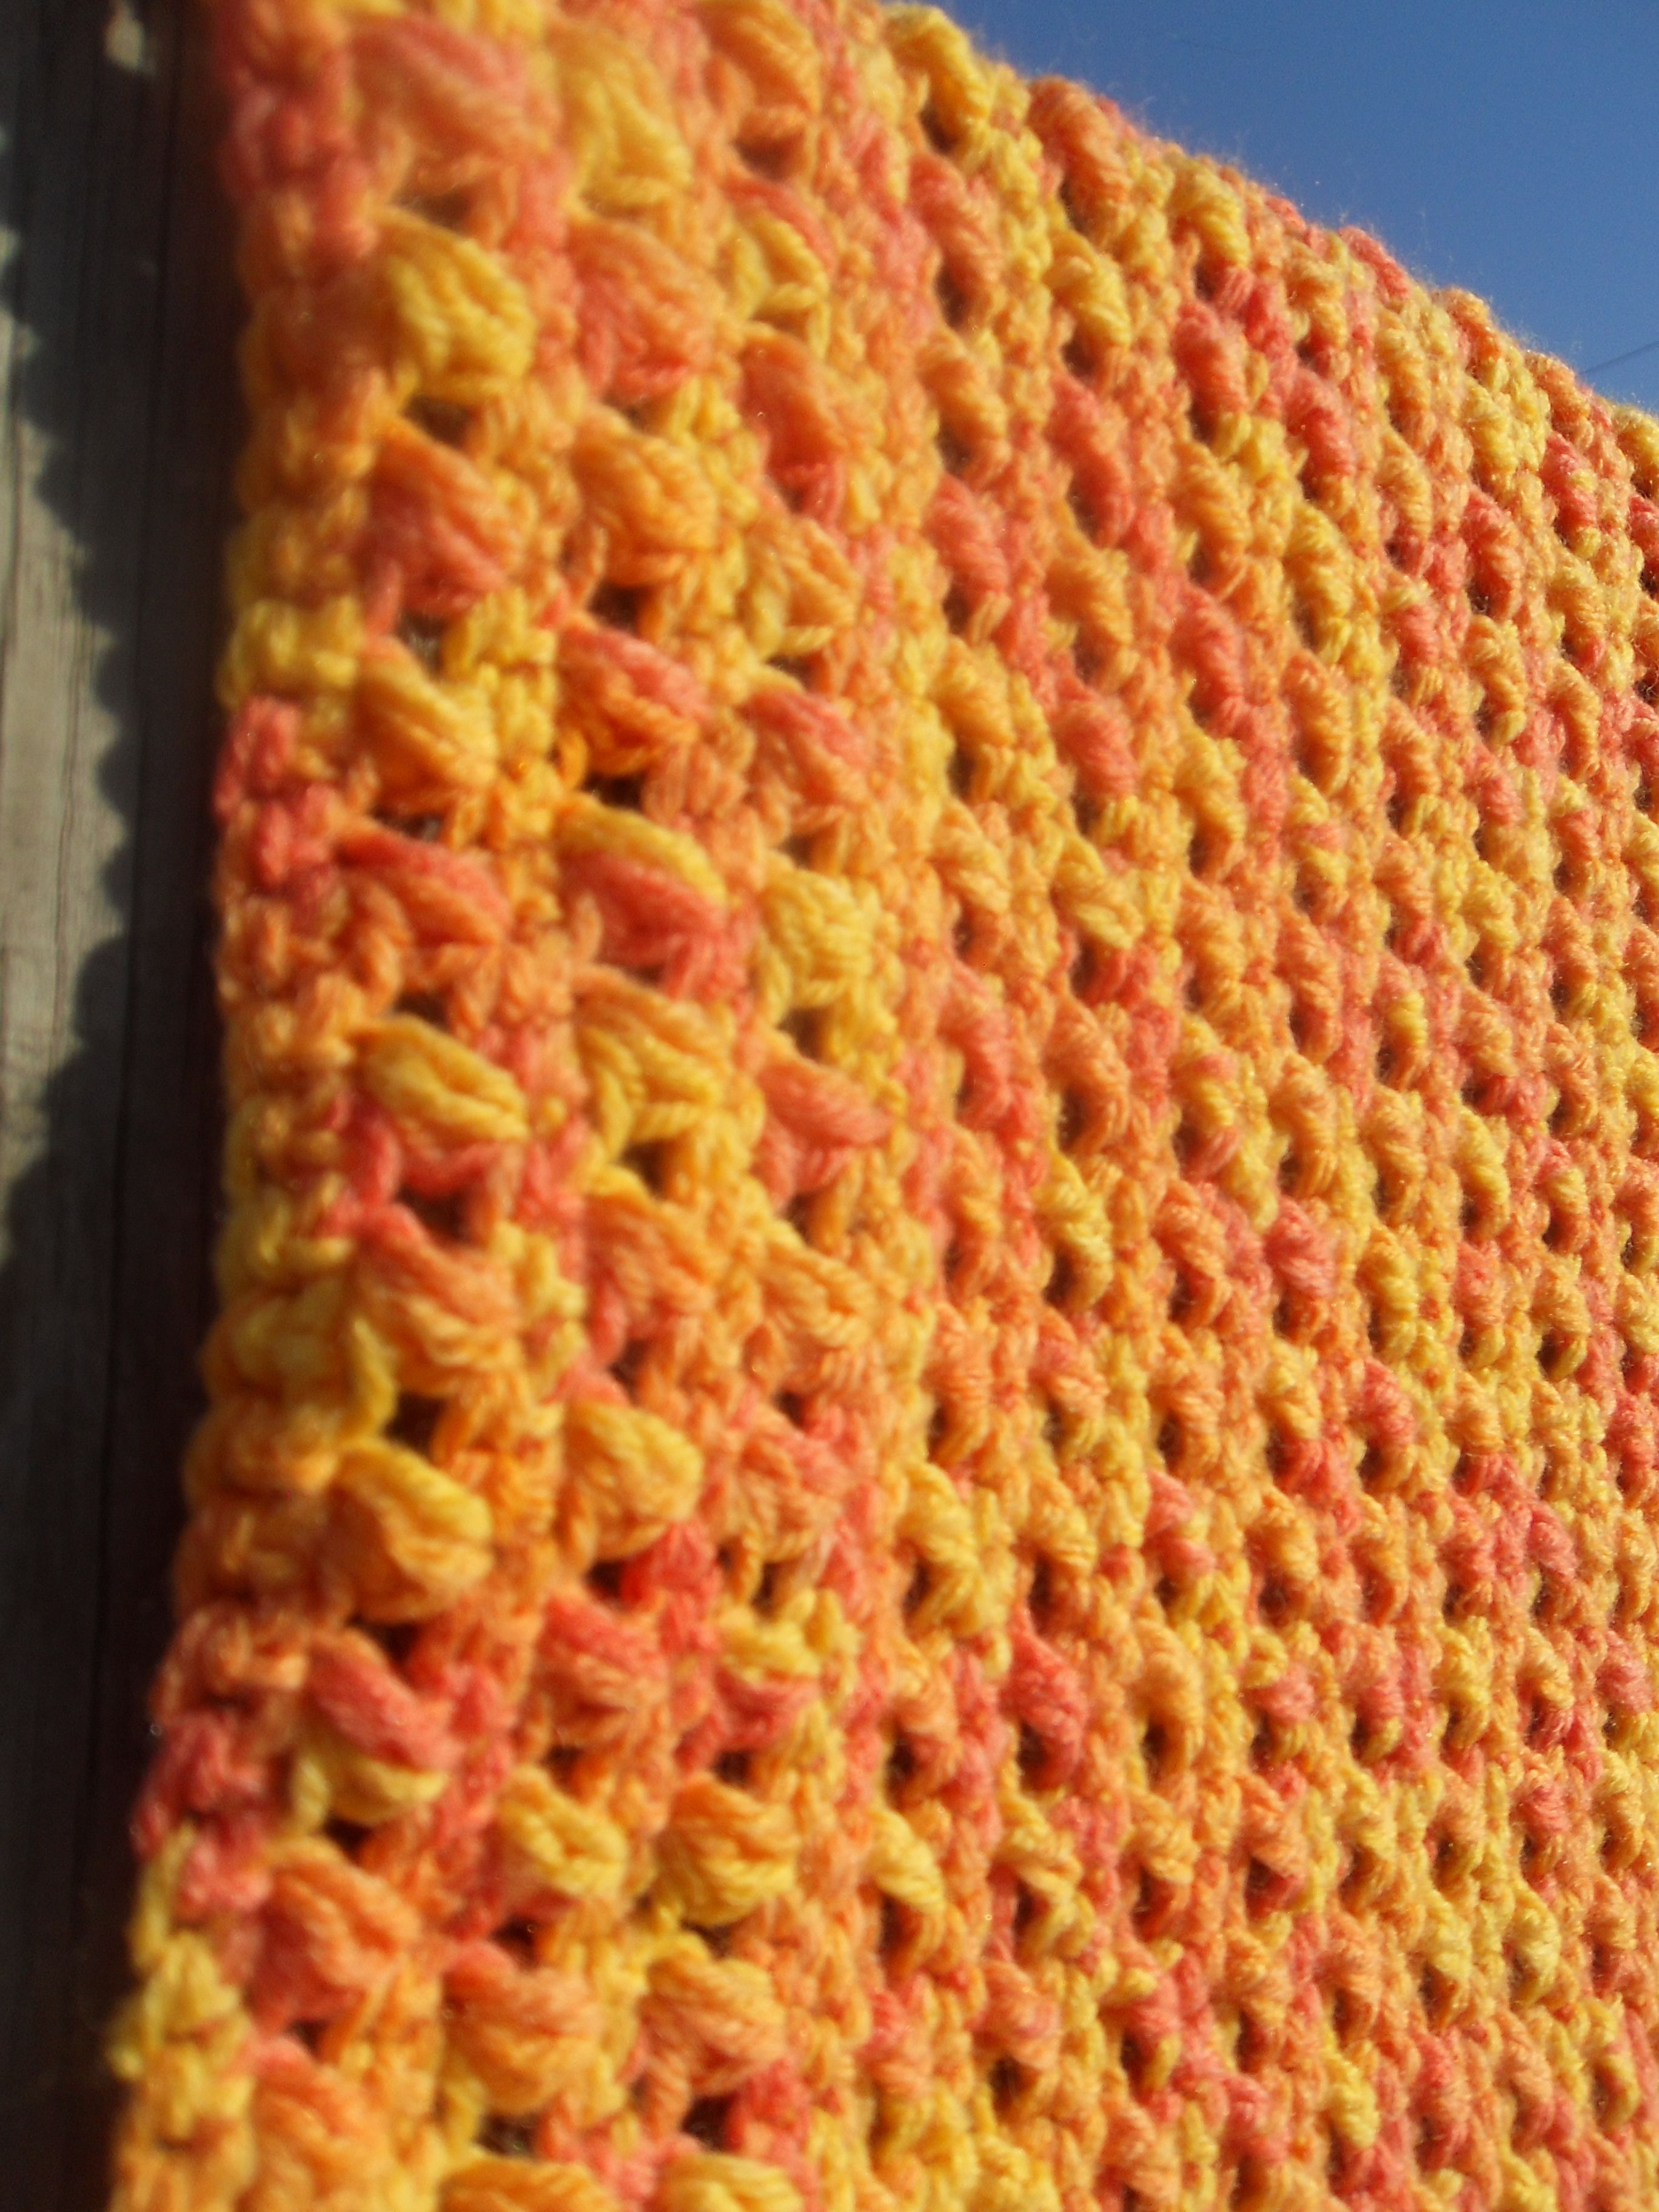 Agrumi baby blanket, puff and cross stitches